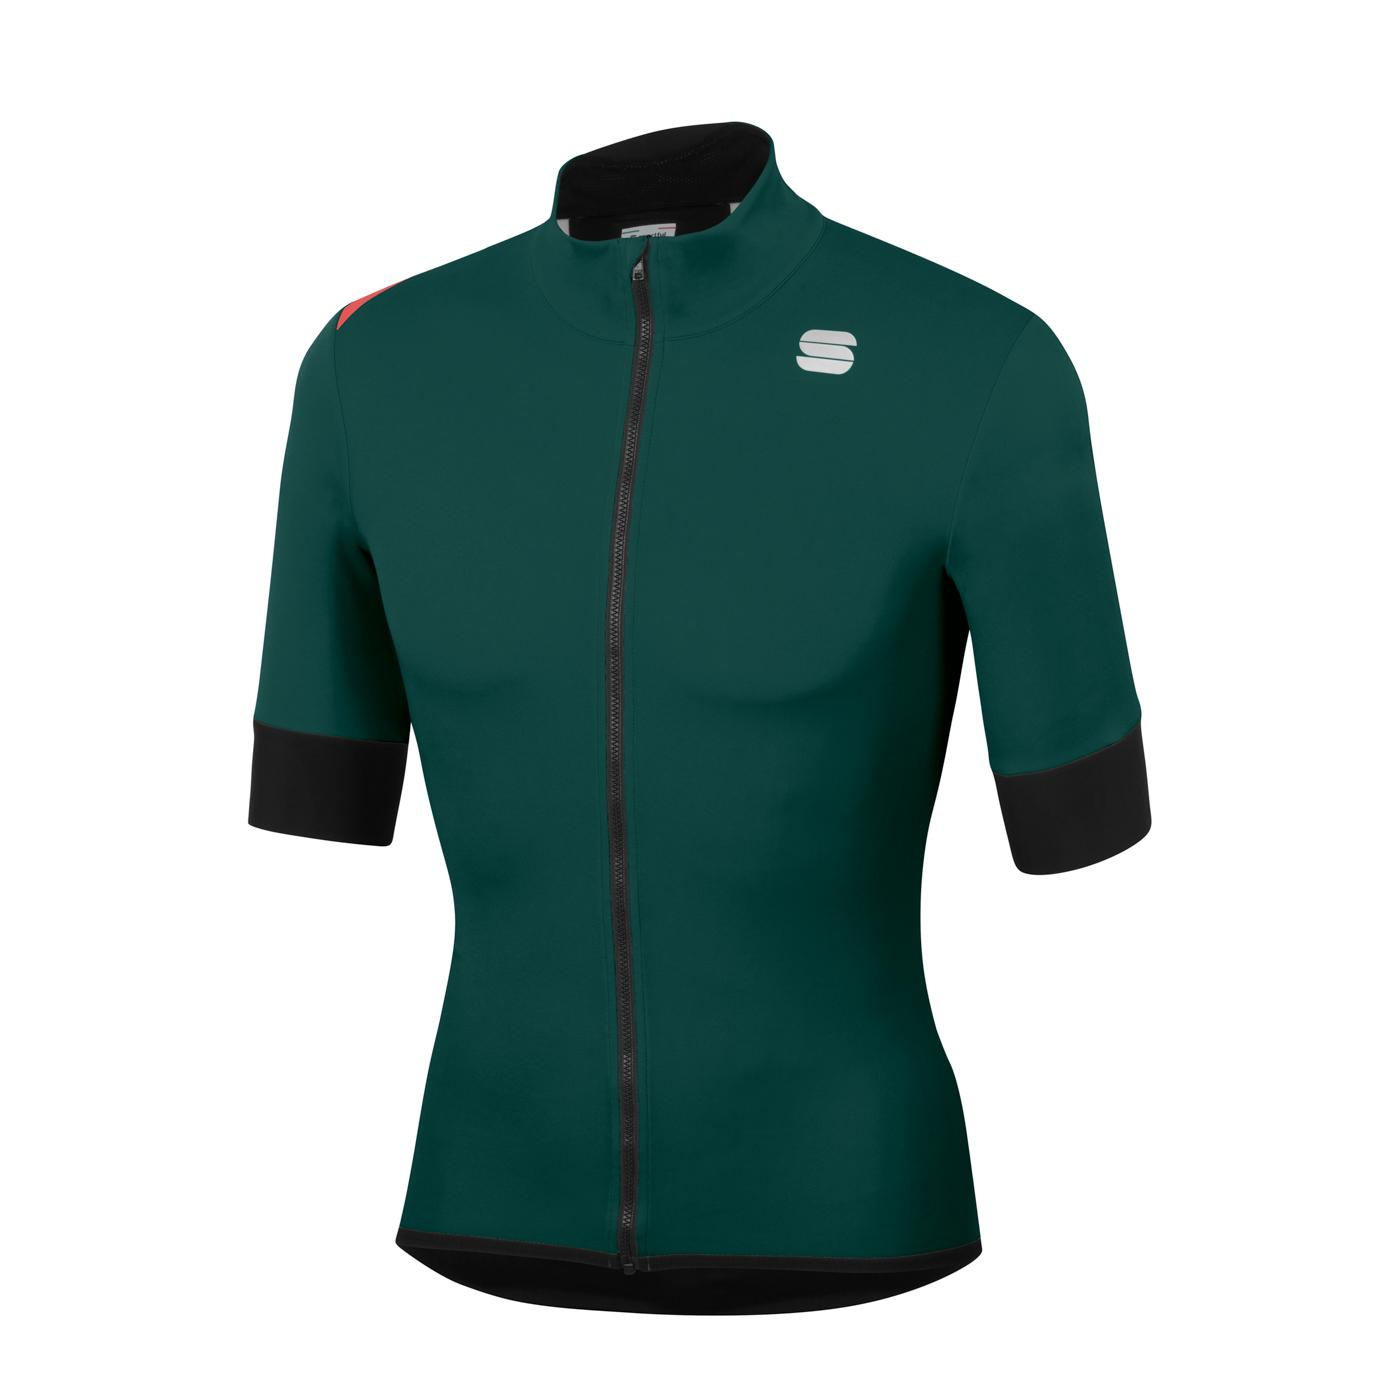 Sportful Fietsjack Korte mouwen Zeer sterk waterafstotend voor Heren Groen - SF Fiandre Light No Rain Jacket S-Sea Moss